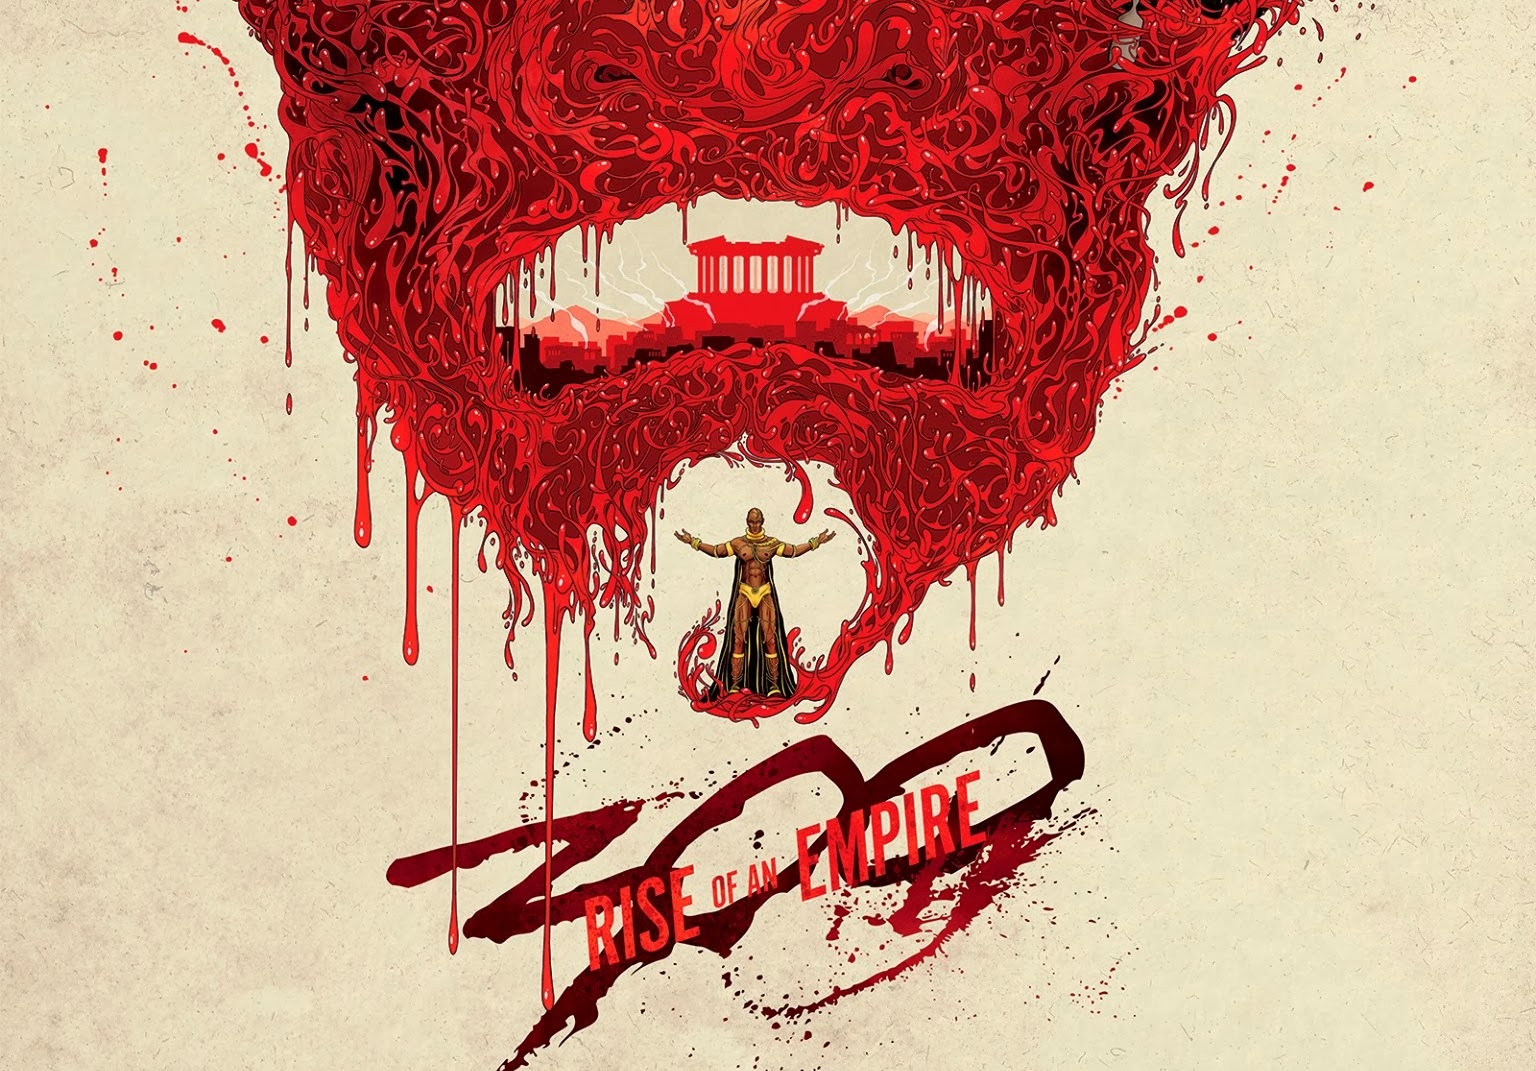 300: Rise of an Empire - New Trailers & Posters